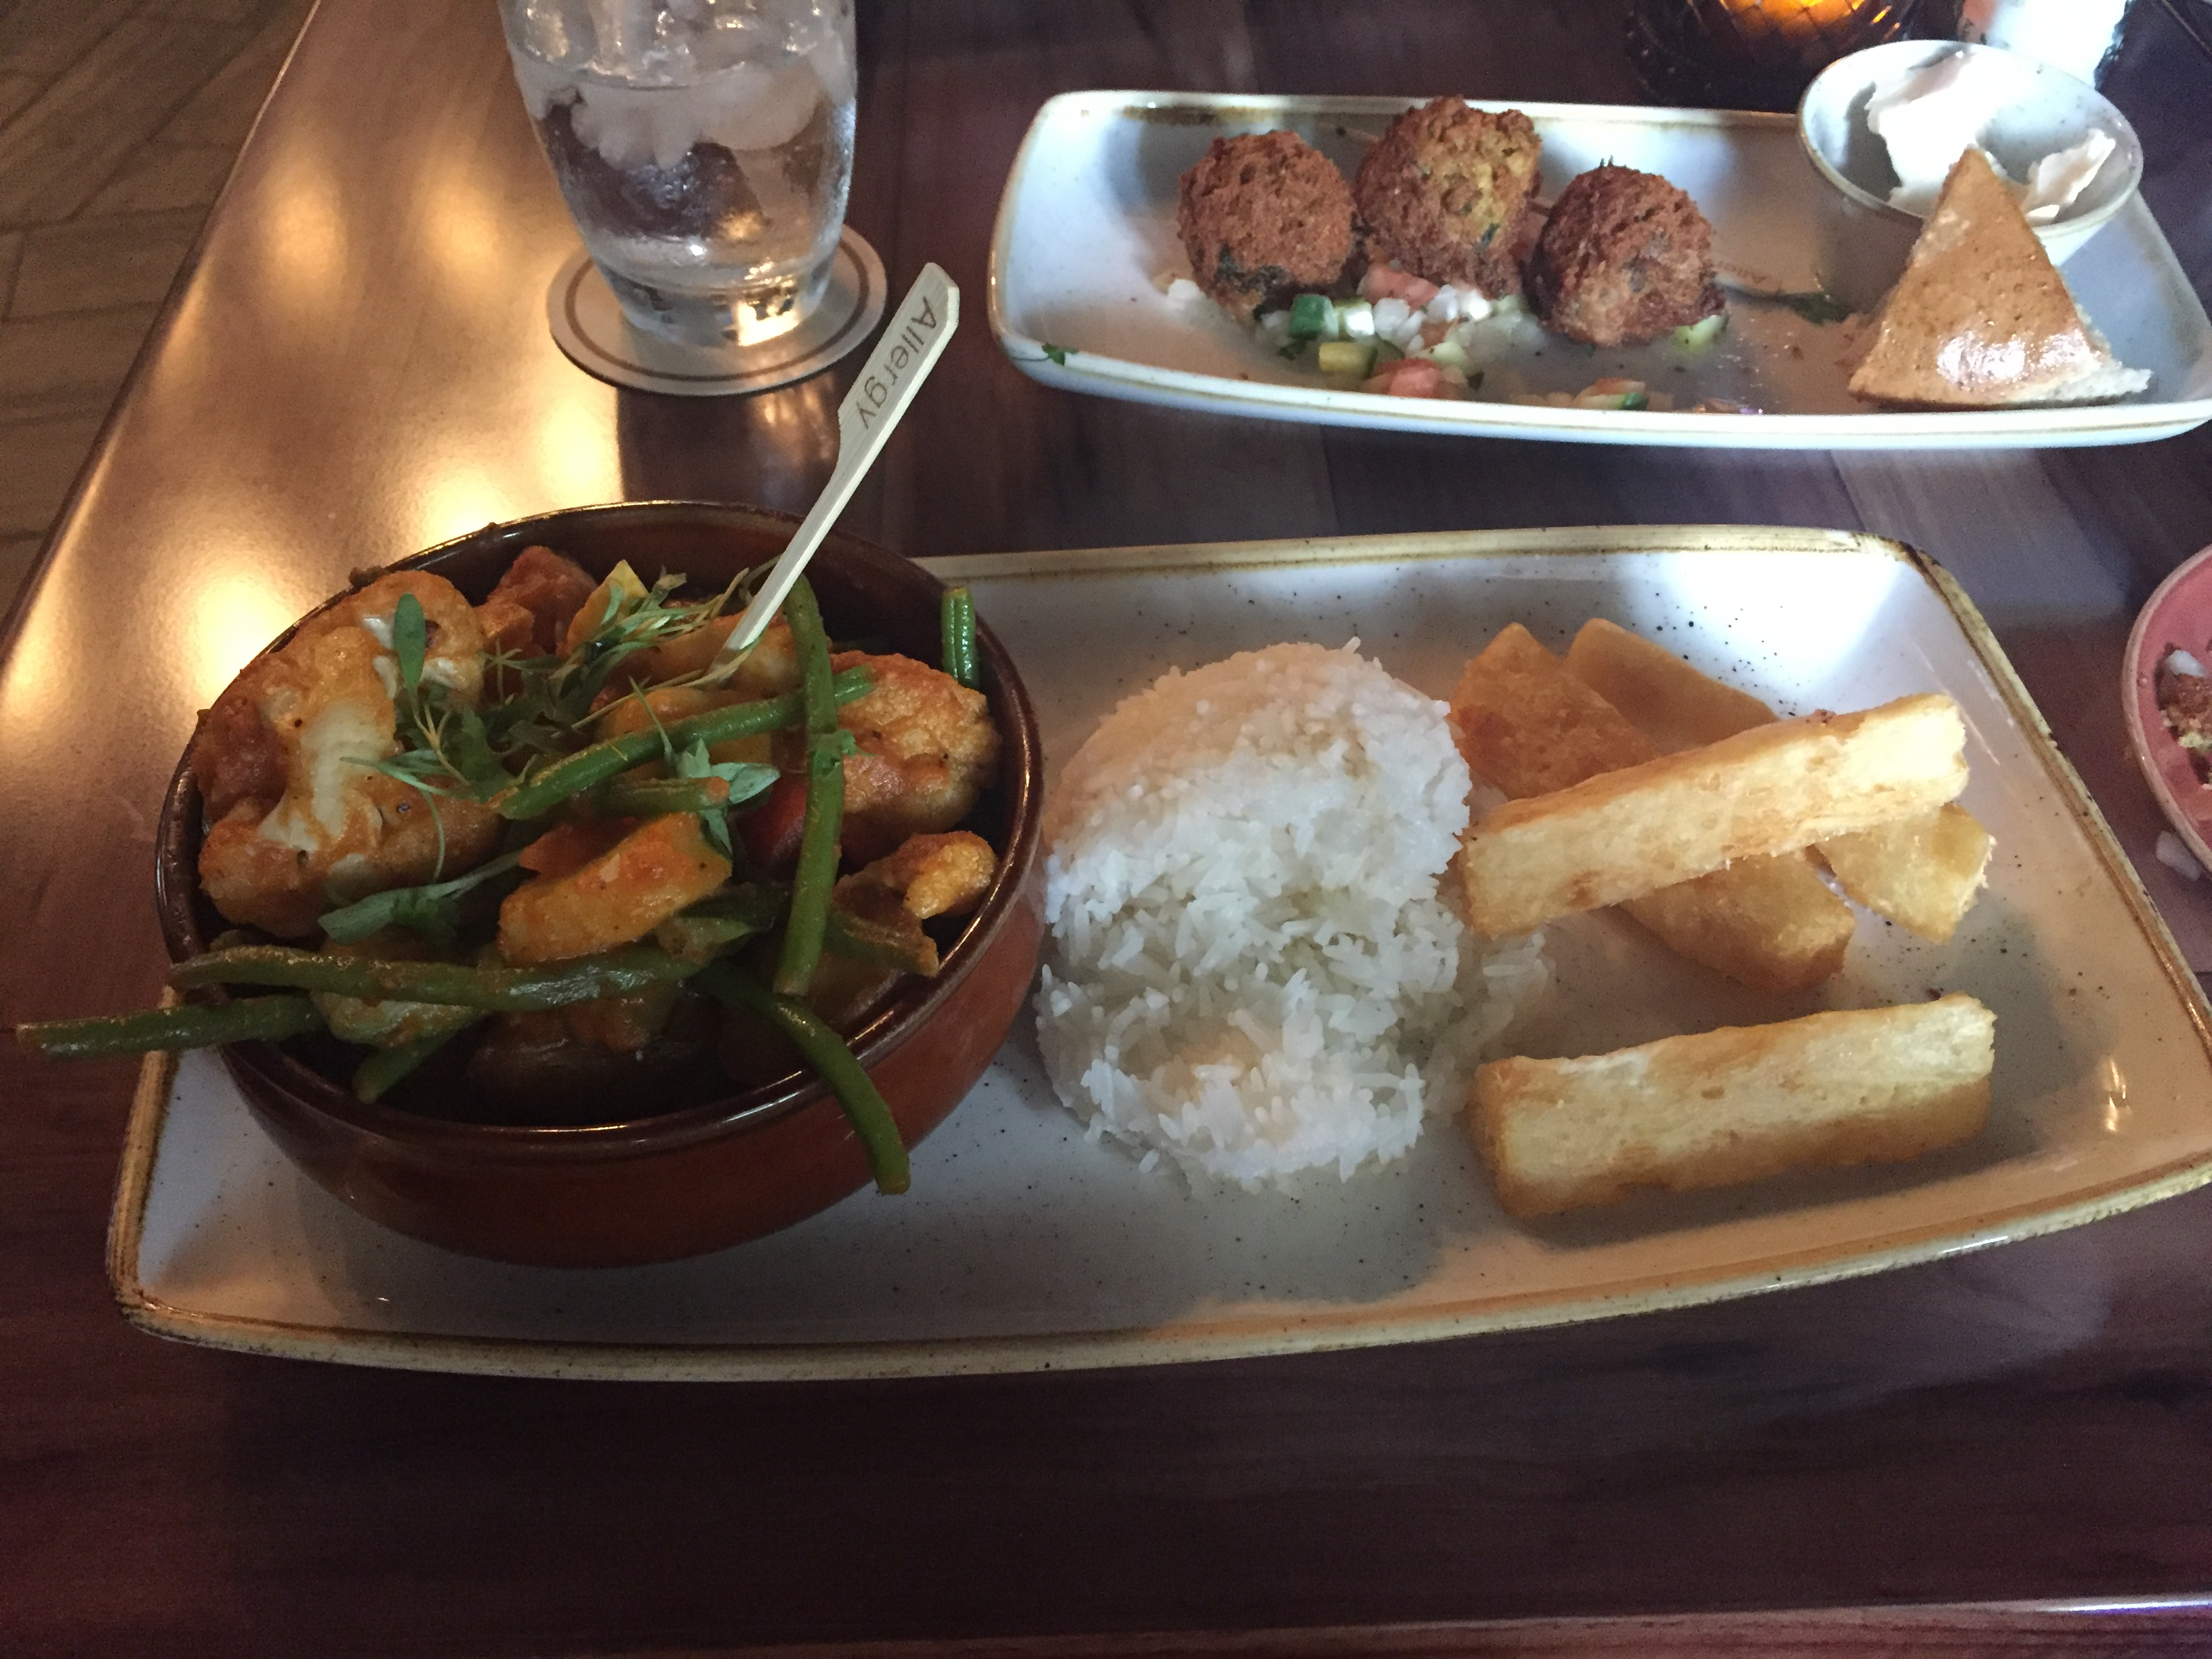 Vegan dining options at Skipper Canteen at Disney's Magic Kingdom #vegan #disneyworld